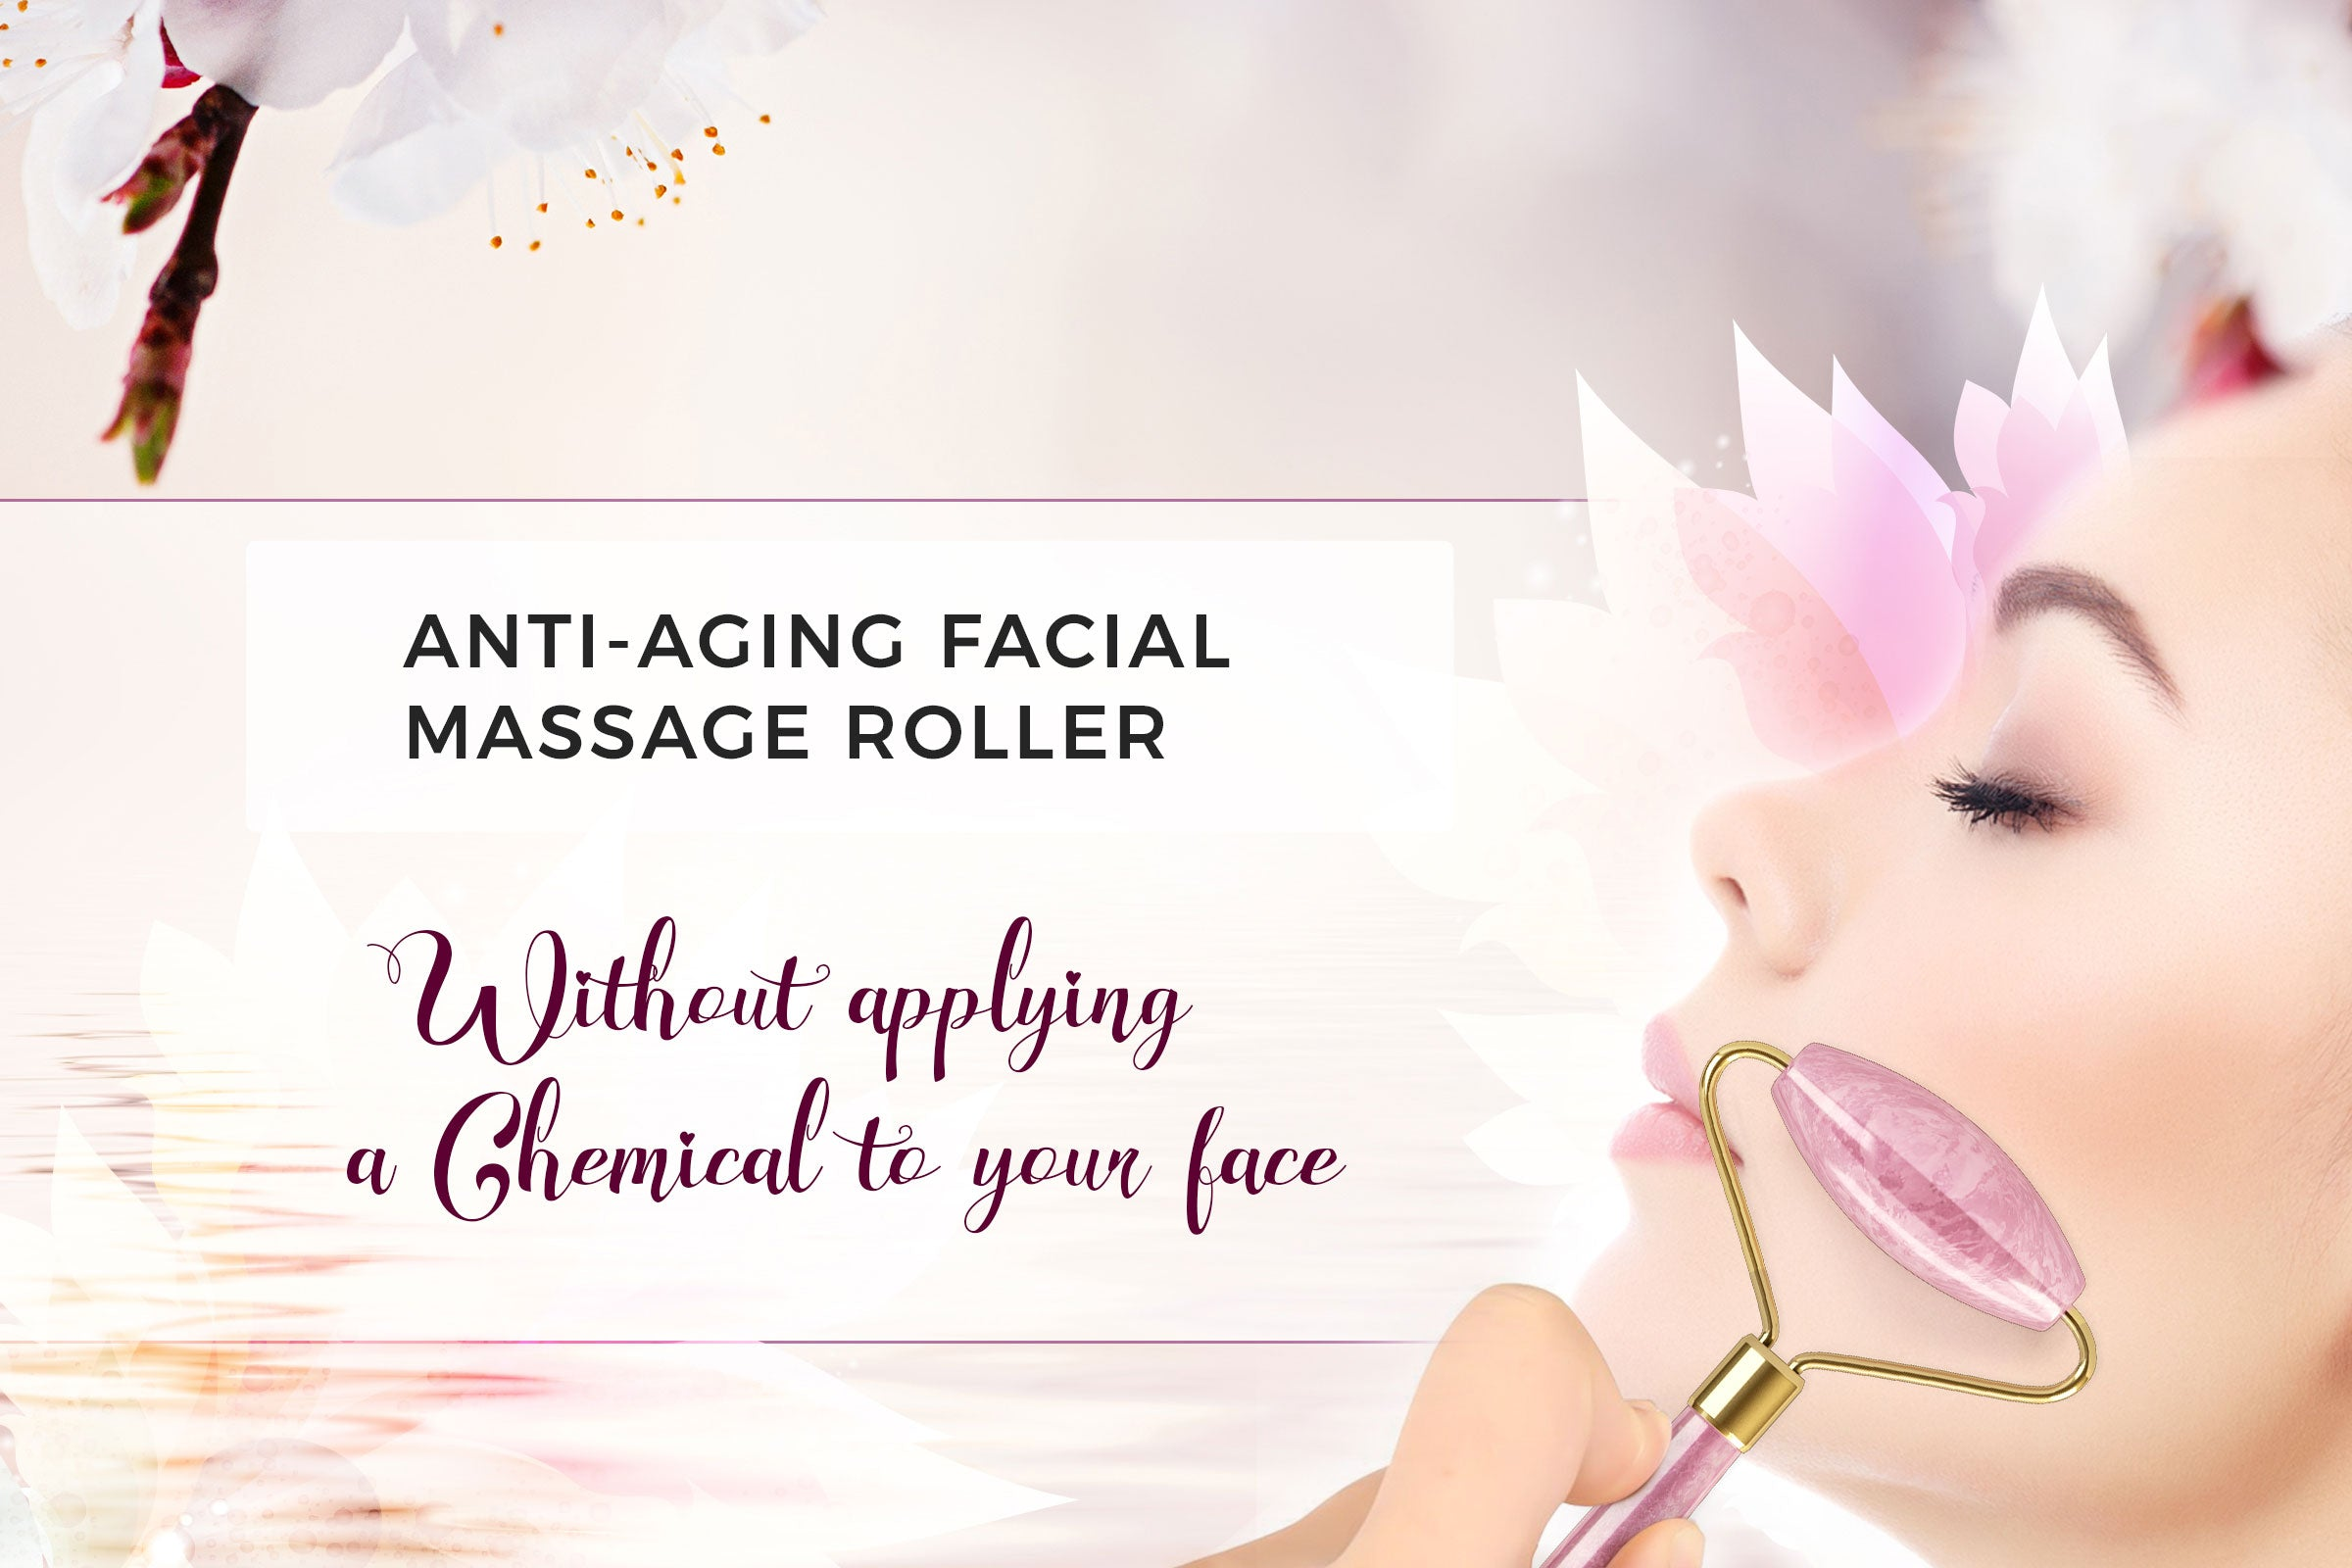 ANTI-AGING FACIAL MASSAGE ROLLER WITHOUT APPLYING A CHEMICAL TO YOUR FACE